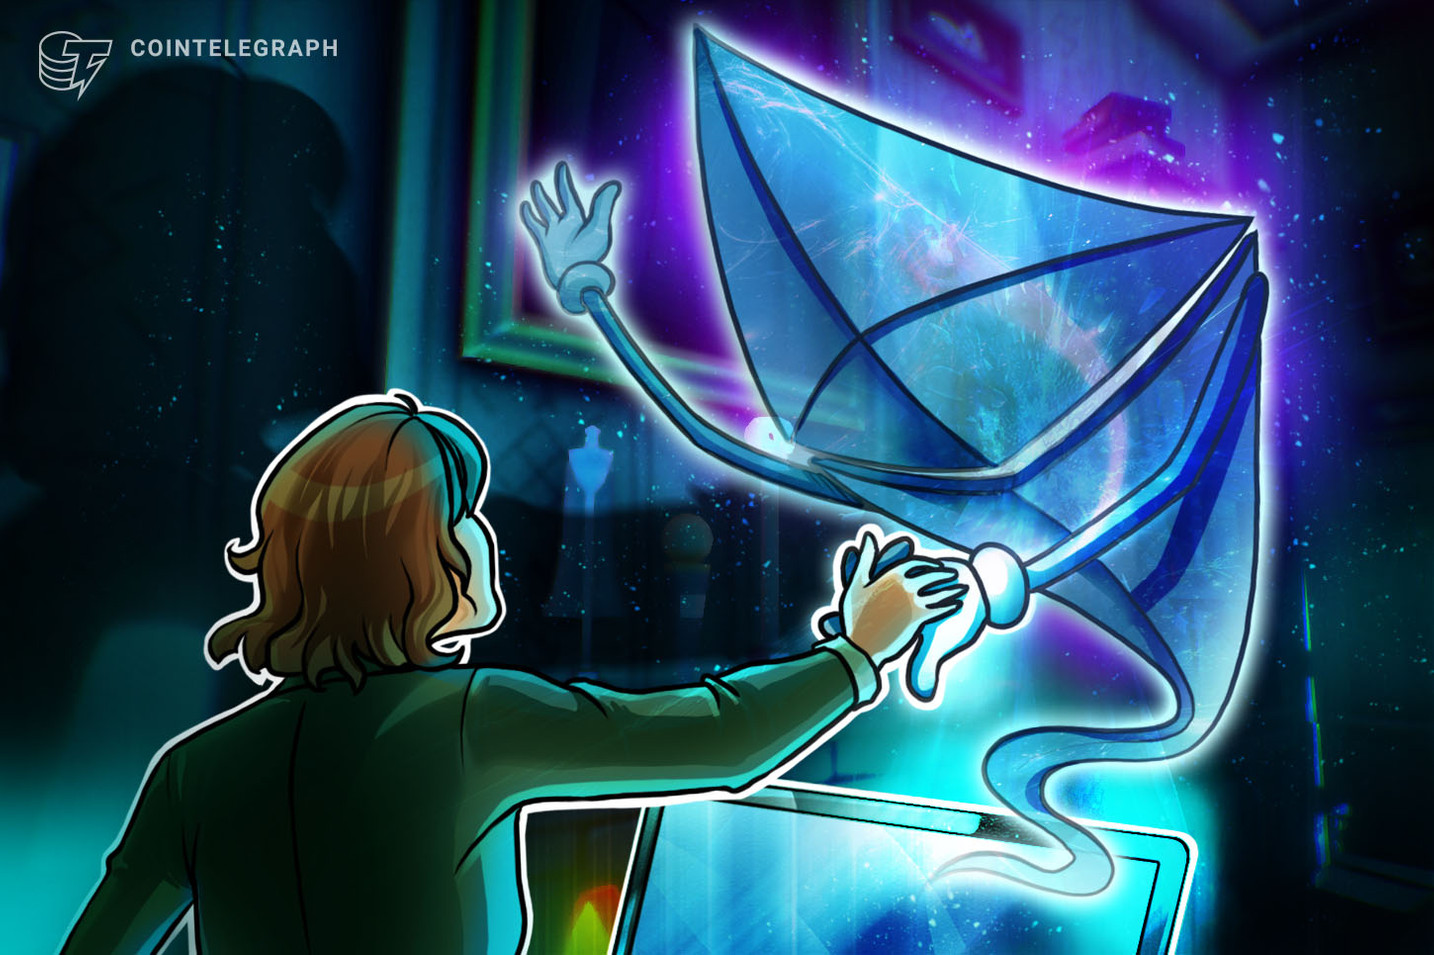 Amount of Ether Locked in DeFi Is Growing Despite Price Slump